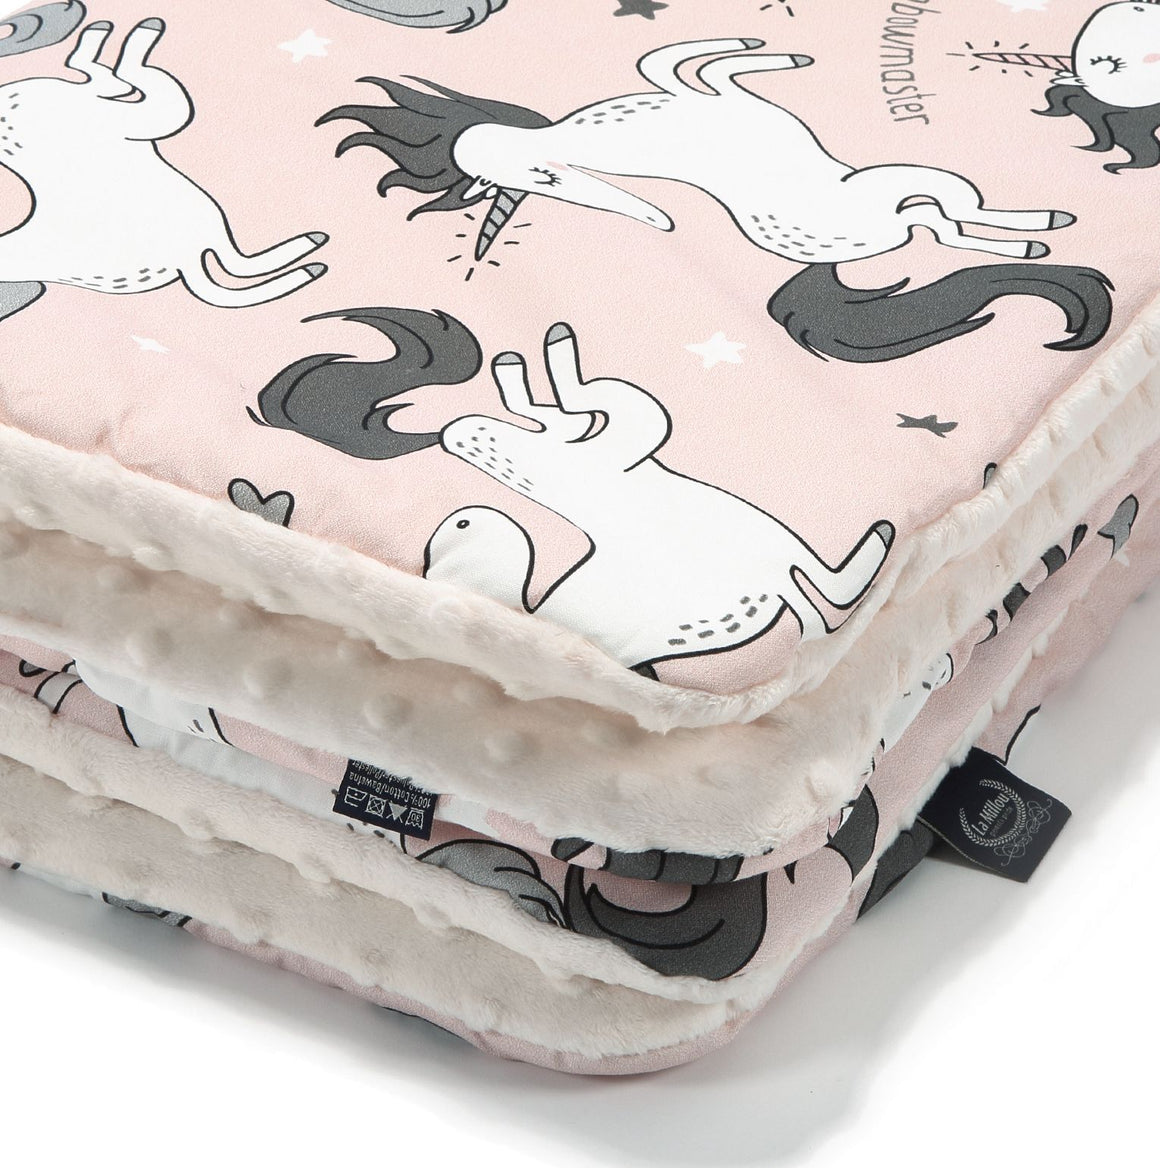 MEDIUM BLANKET - Unicorn Sugar Babe | Ecru